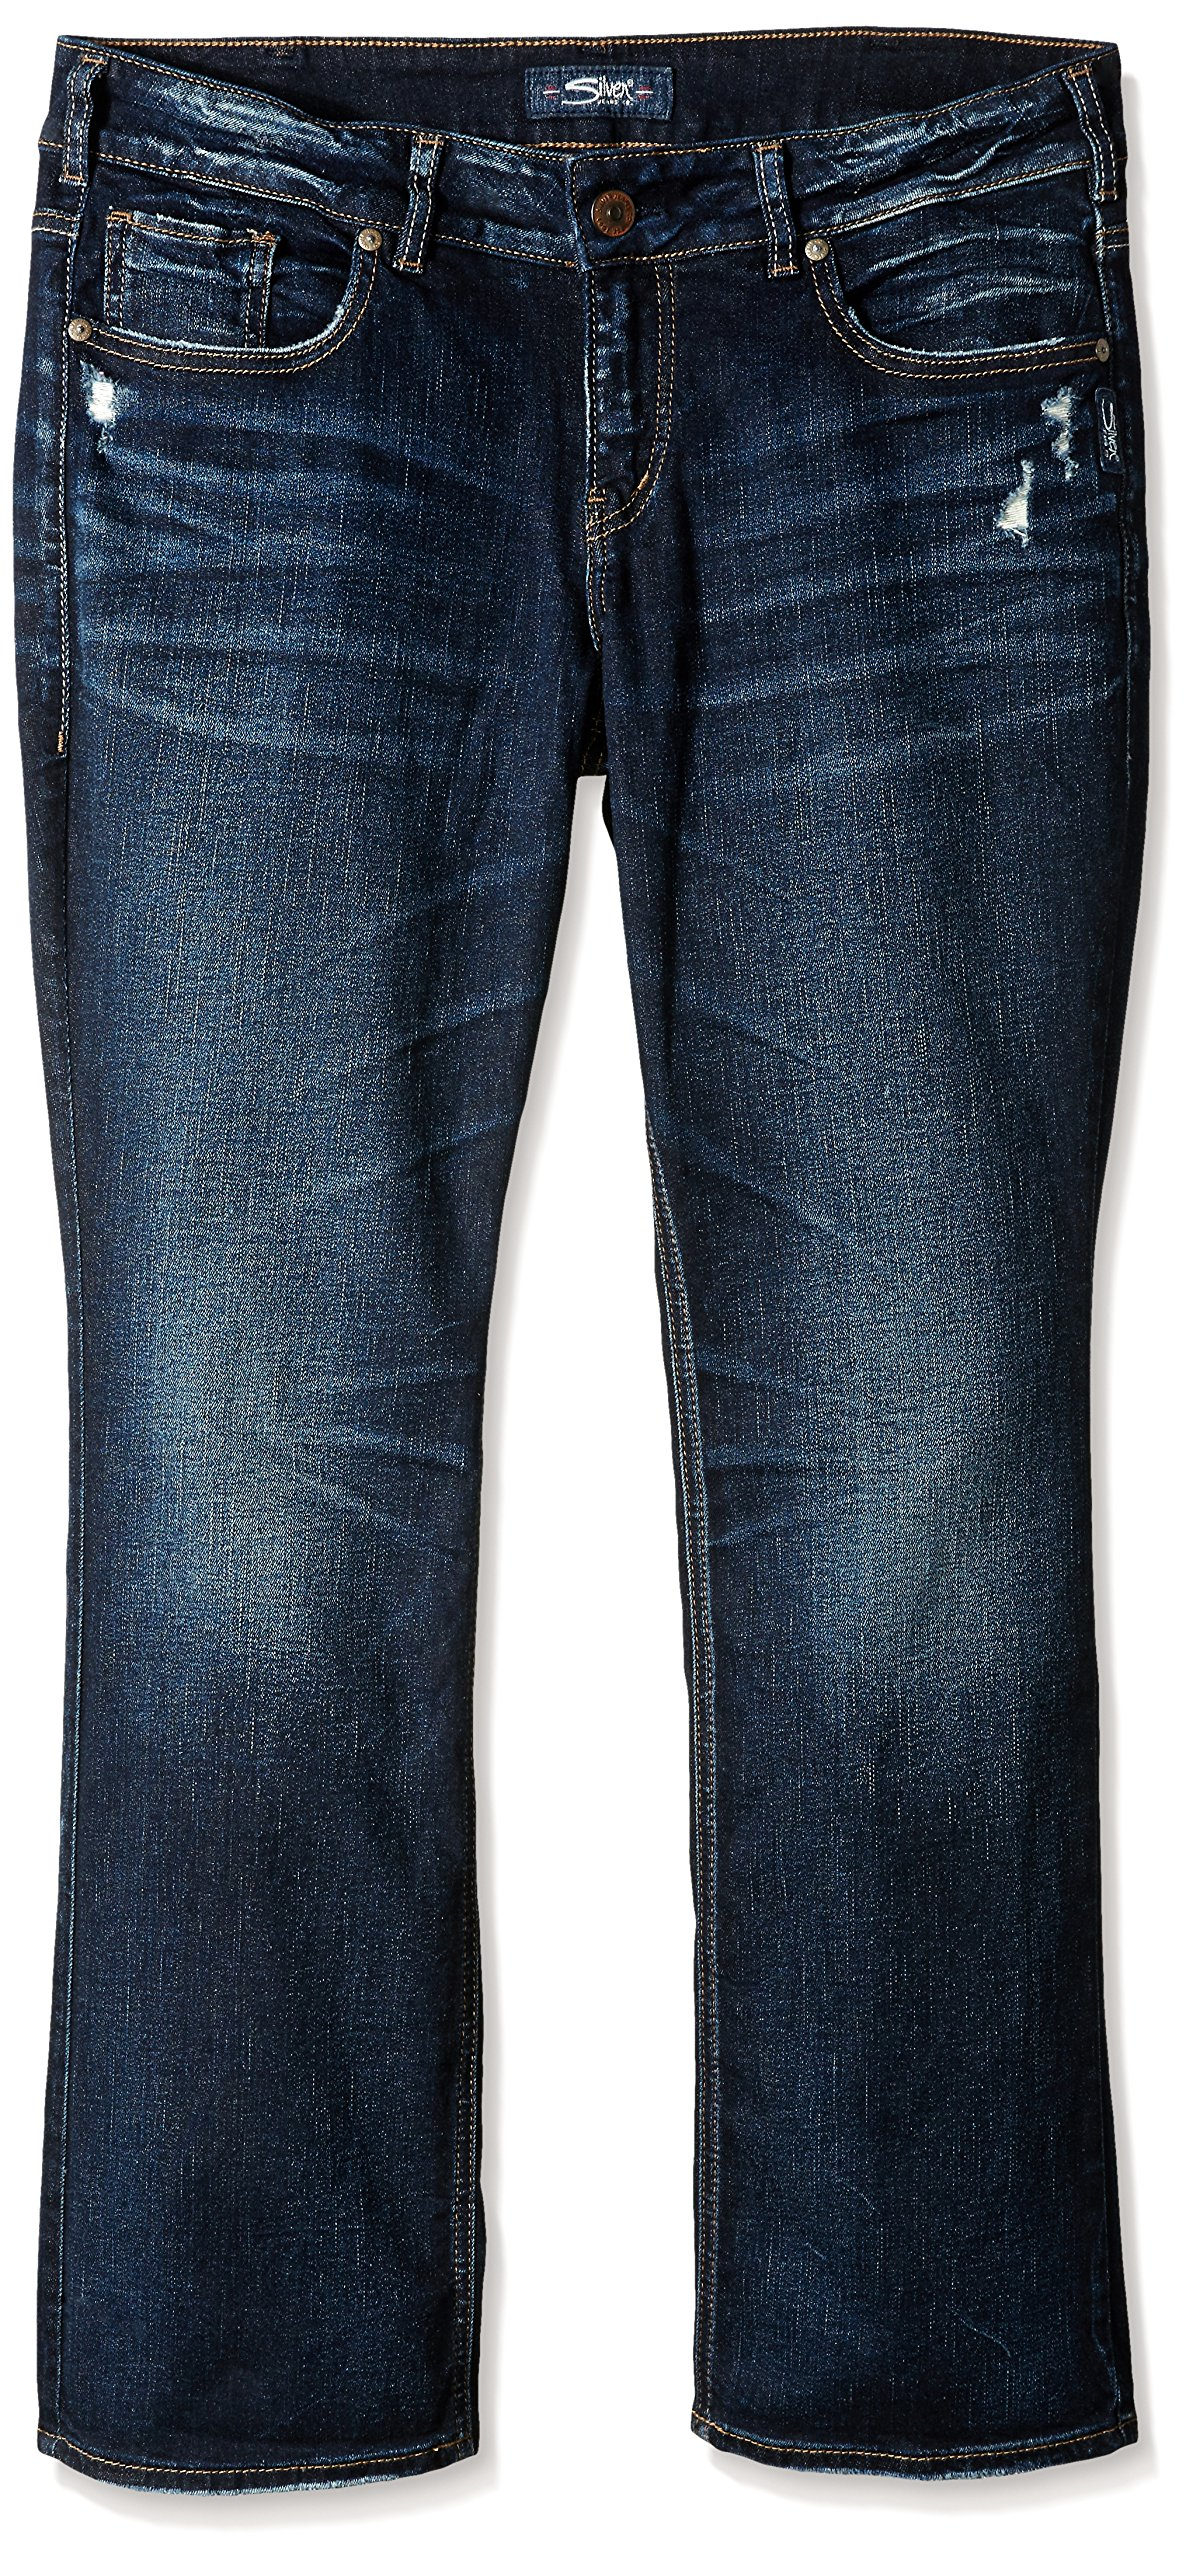 Silver Jeans Women's Plus Size Elyse Mid-Rise Slim Bootcut Jeans, Dark Hand Sand Wash, 16X33